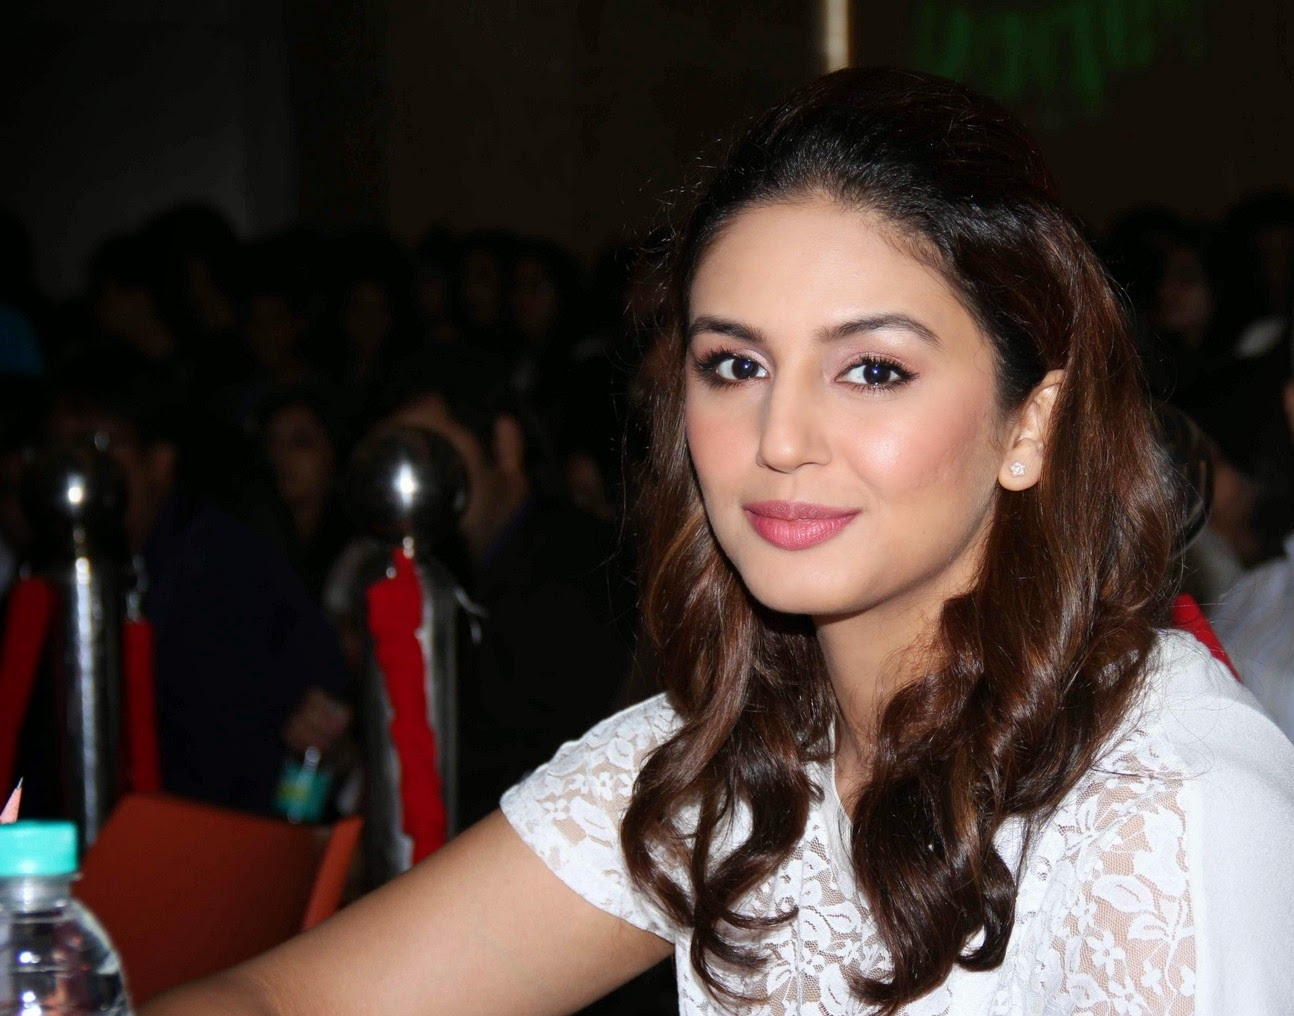 huma qureshi cute smile pic